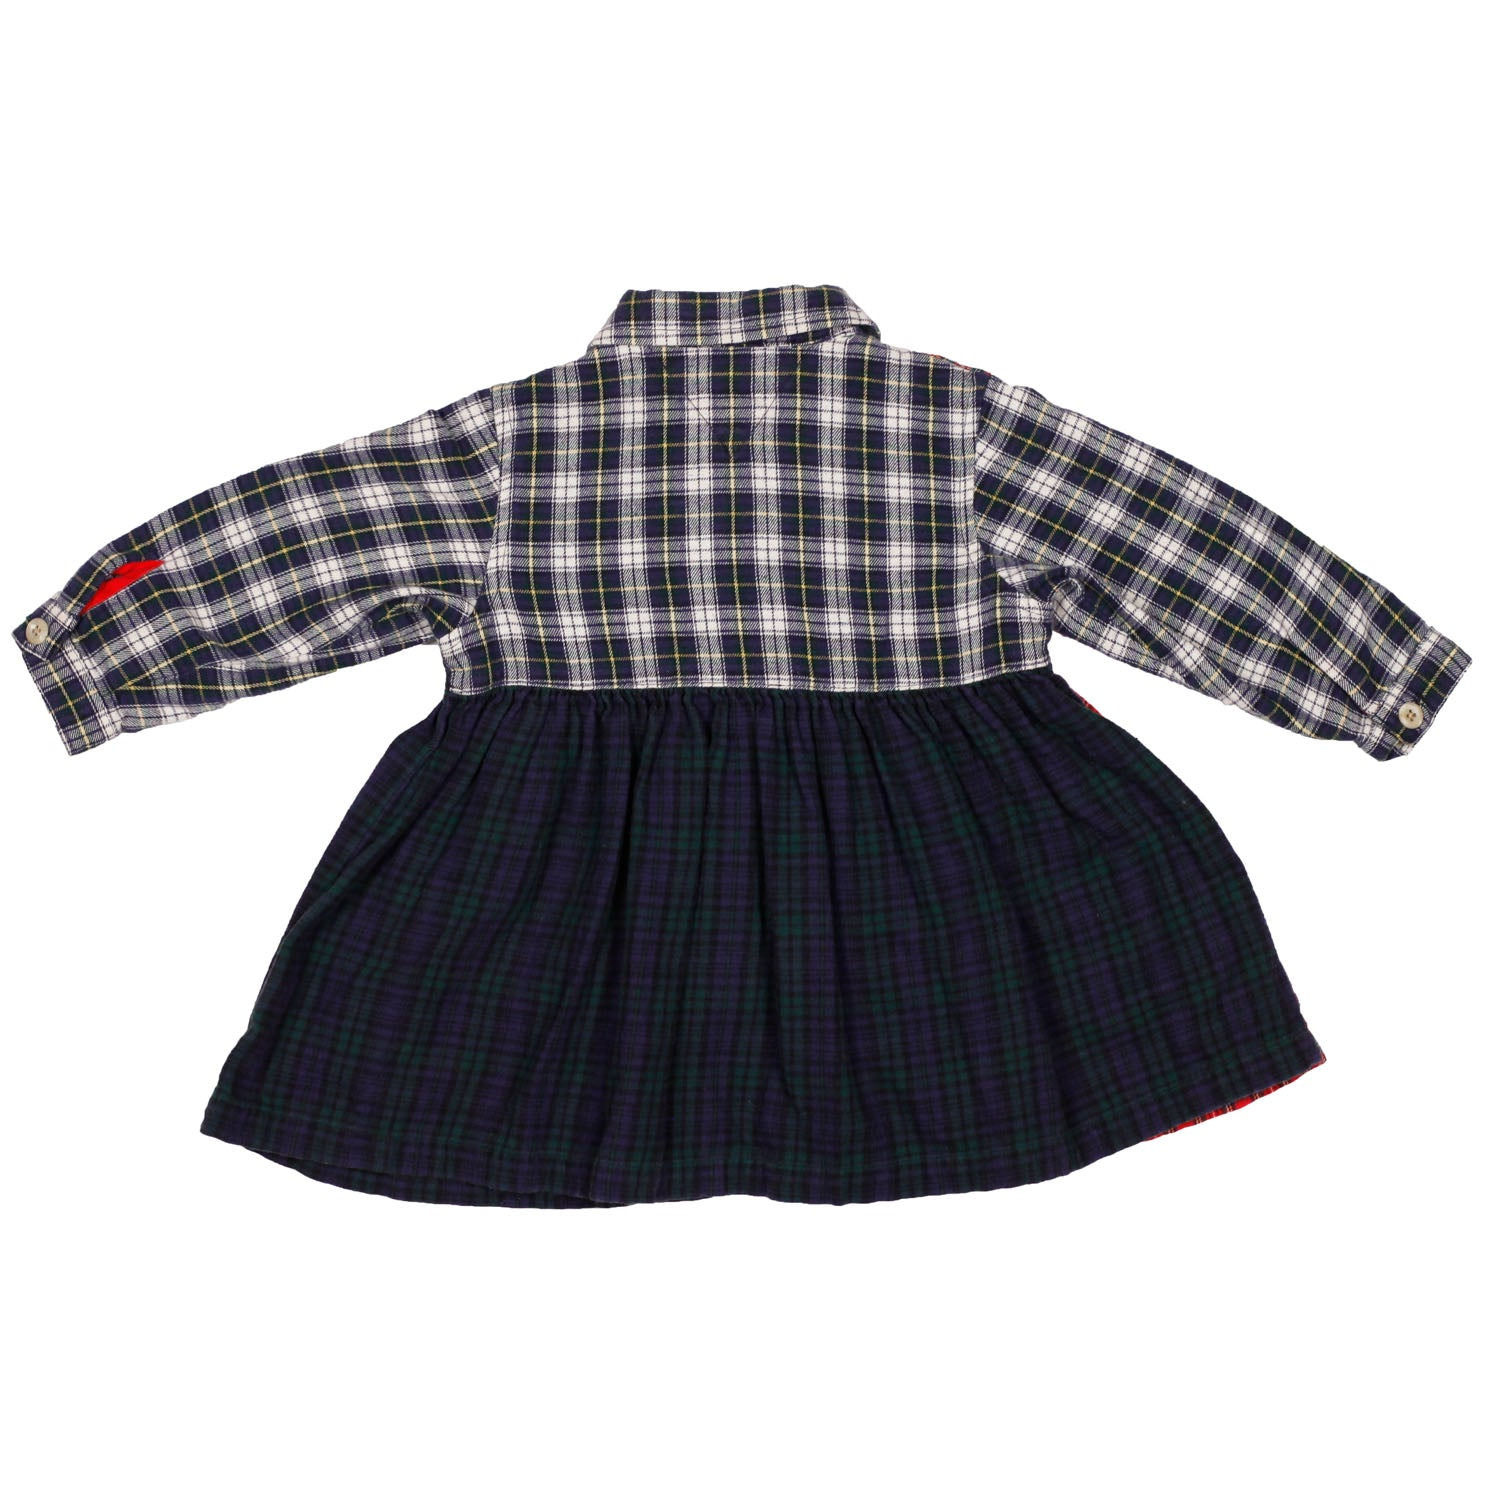 90's Tommy Hilfiger multi plaid dress size 12/18m